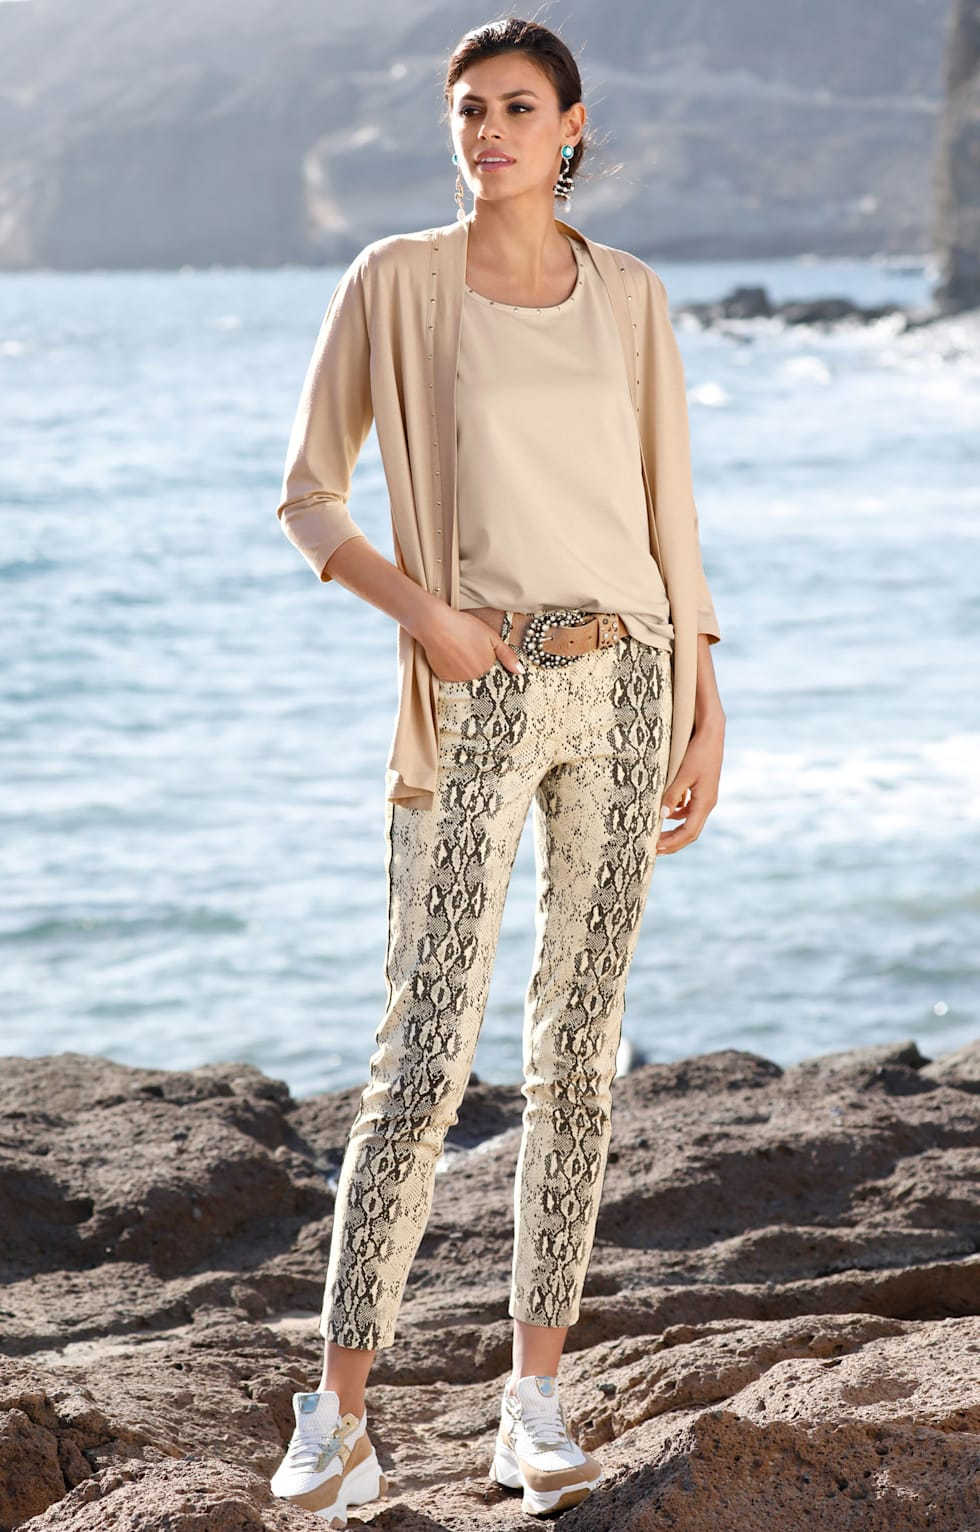 Home_HW20_KW35_37_Trendoutfit_AnimalPrint_Outfit